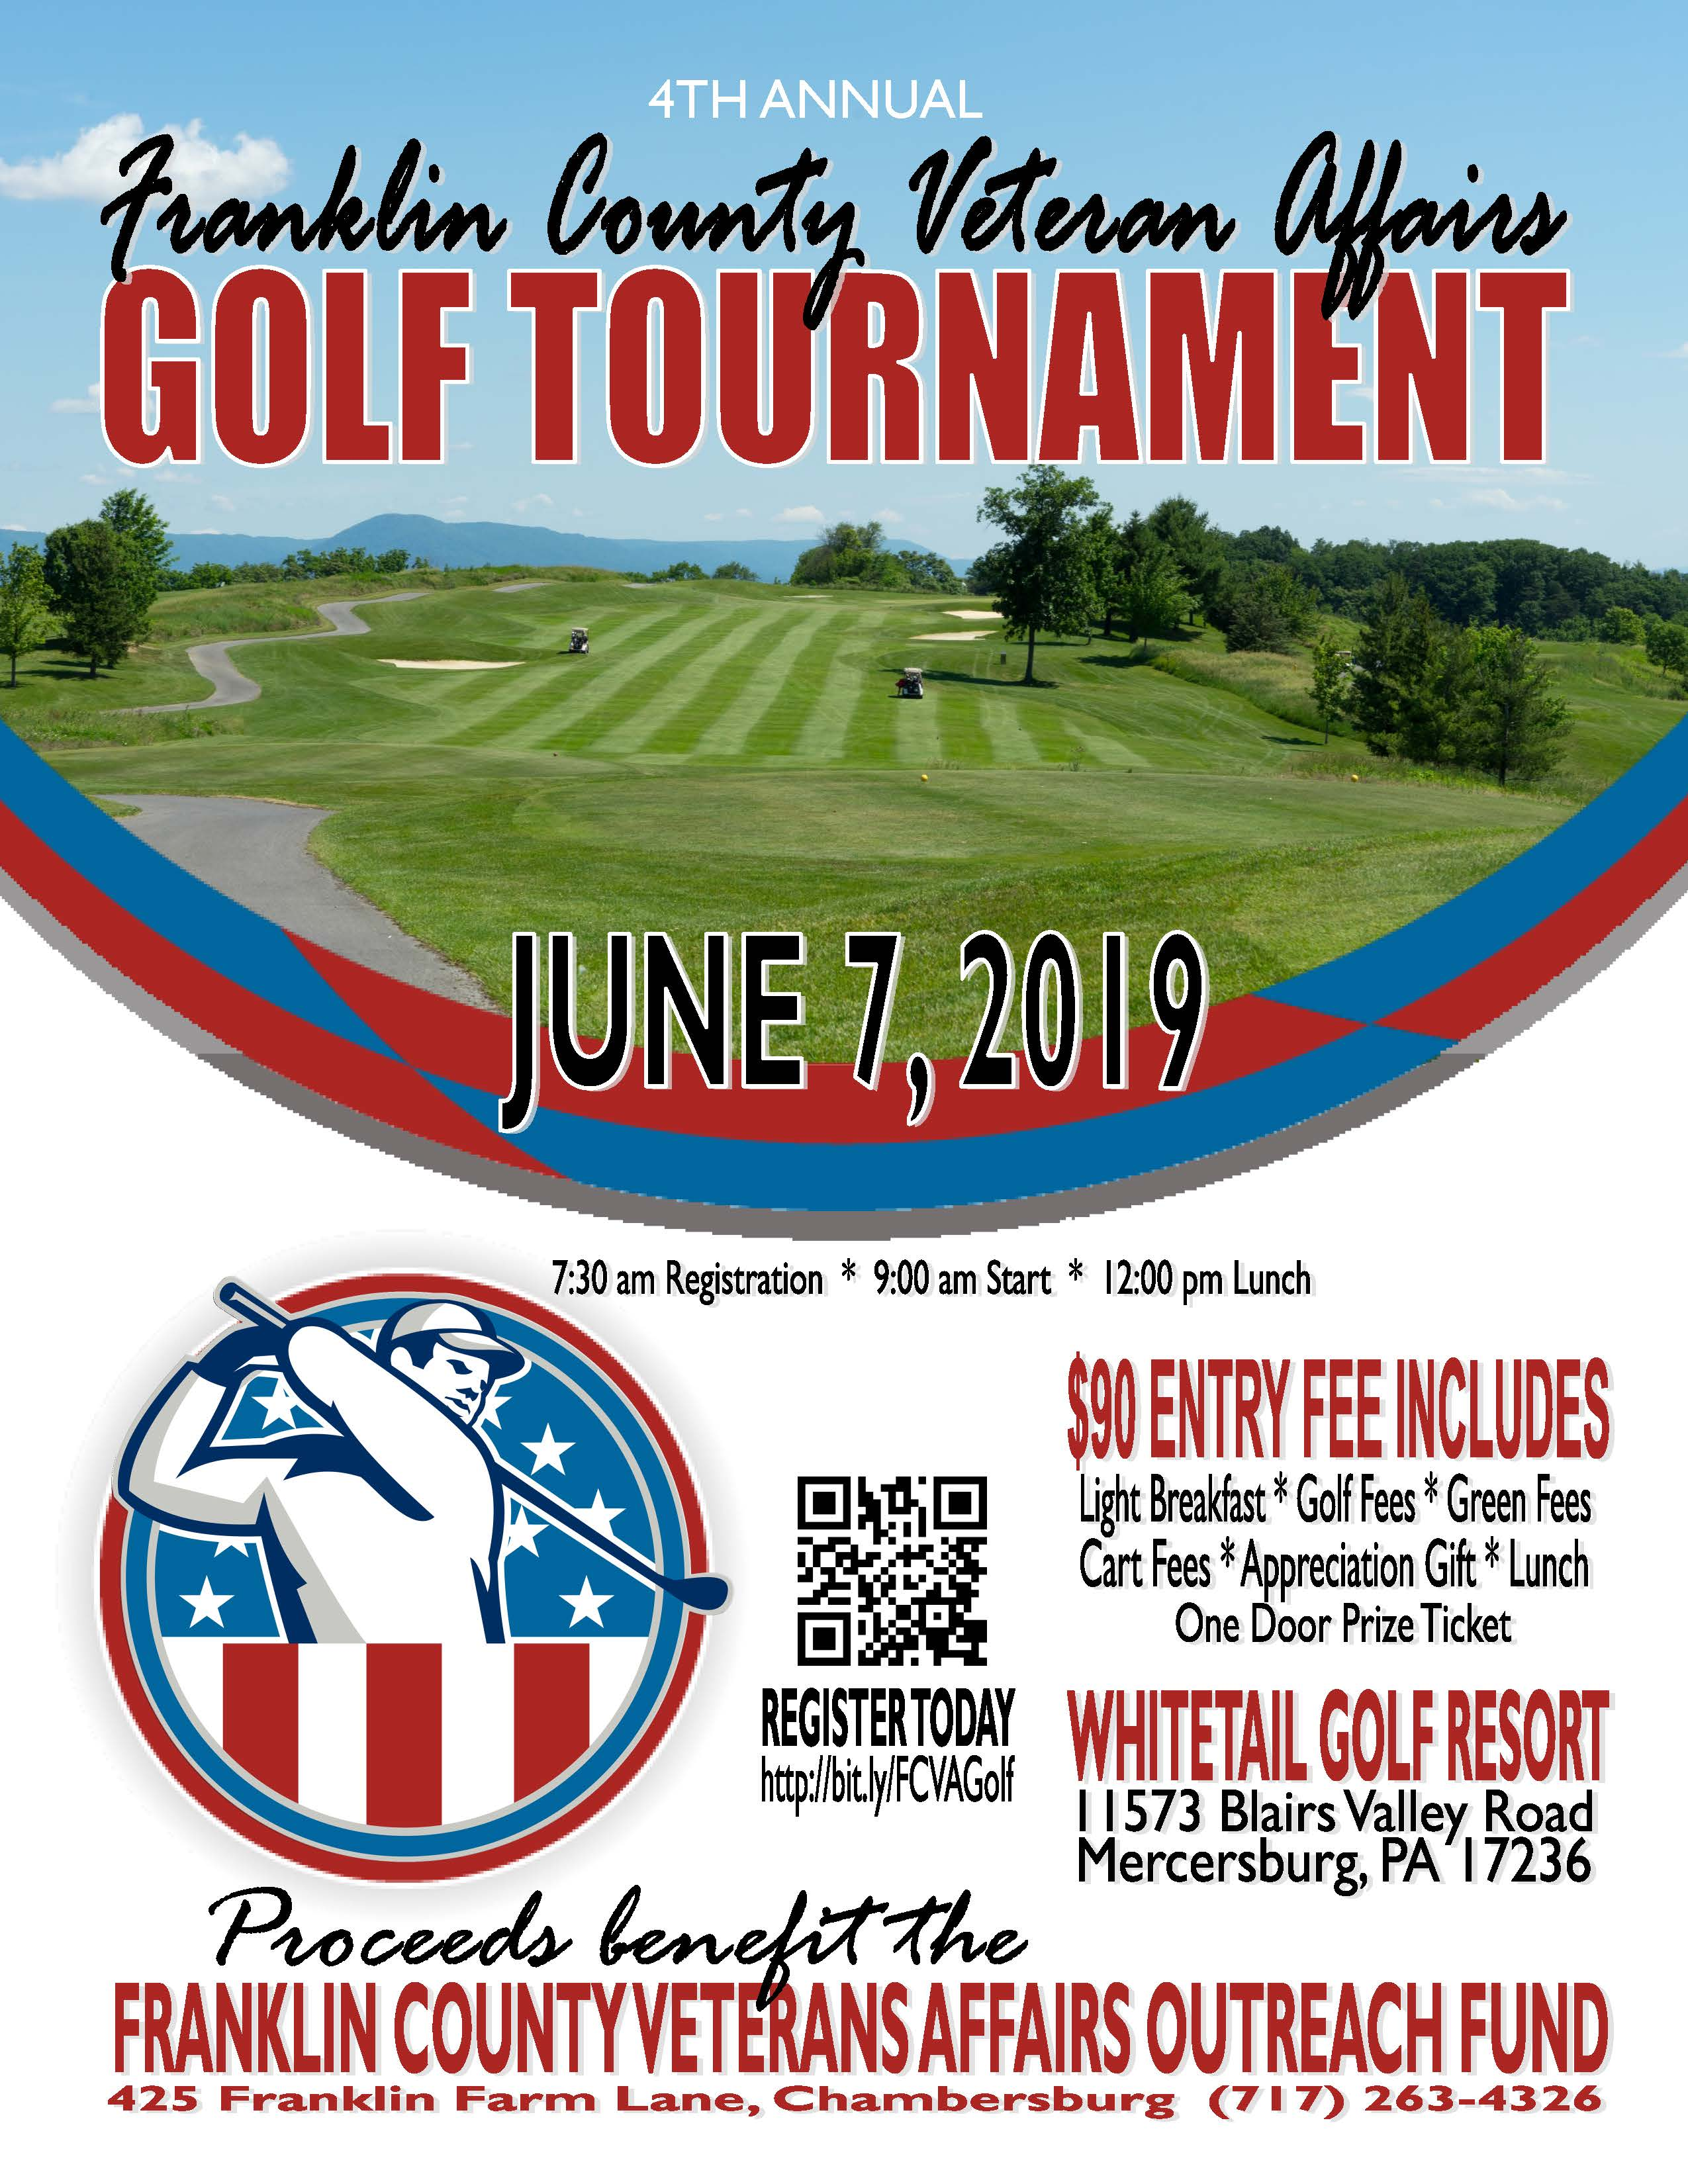 The 4th Annual Franklin County Veterans Affairs Golf Tournament will be held Friday, June 7th, 2019 at Whitetail Golf Resort.   7:30am - Registration  9:00am - Start  12:00pm - Lunch  $90 entry fee includes: light breakfast, golf/green/cart fees, apprecia